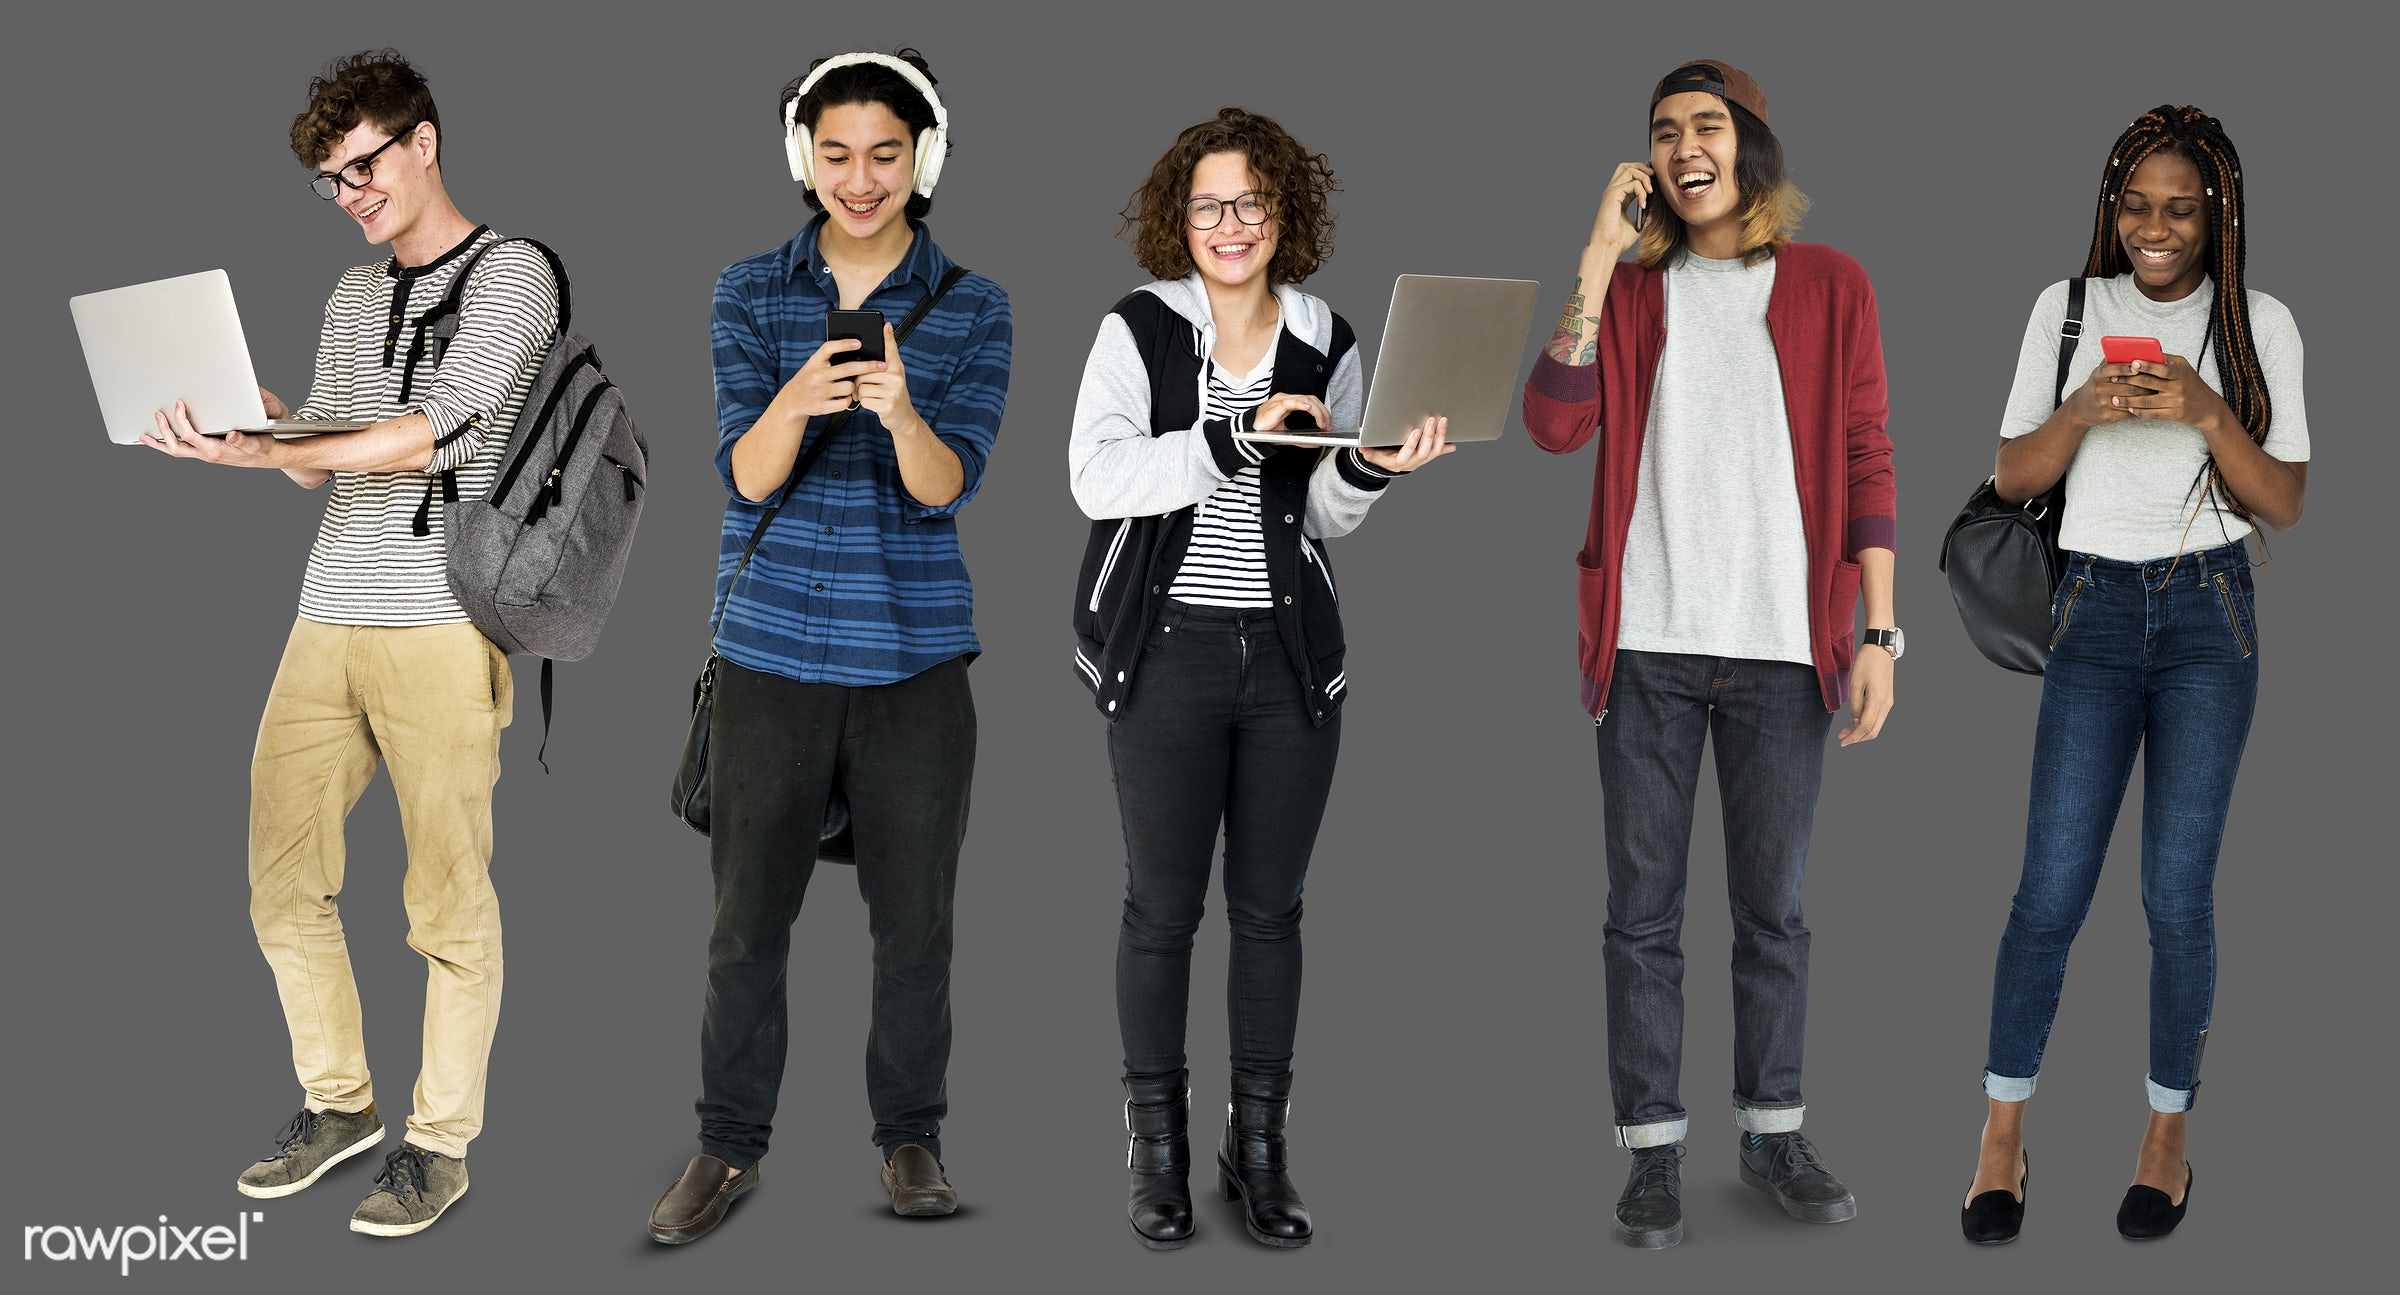 expression, studio, person, phone, technology, diverse, people, asian, caucasian, young adult, woman, social, lifestyle,...